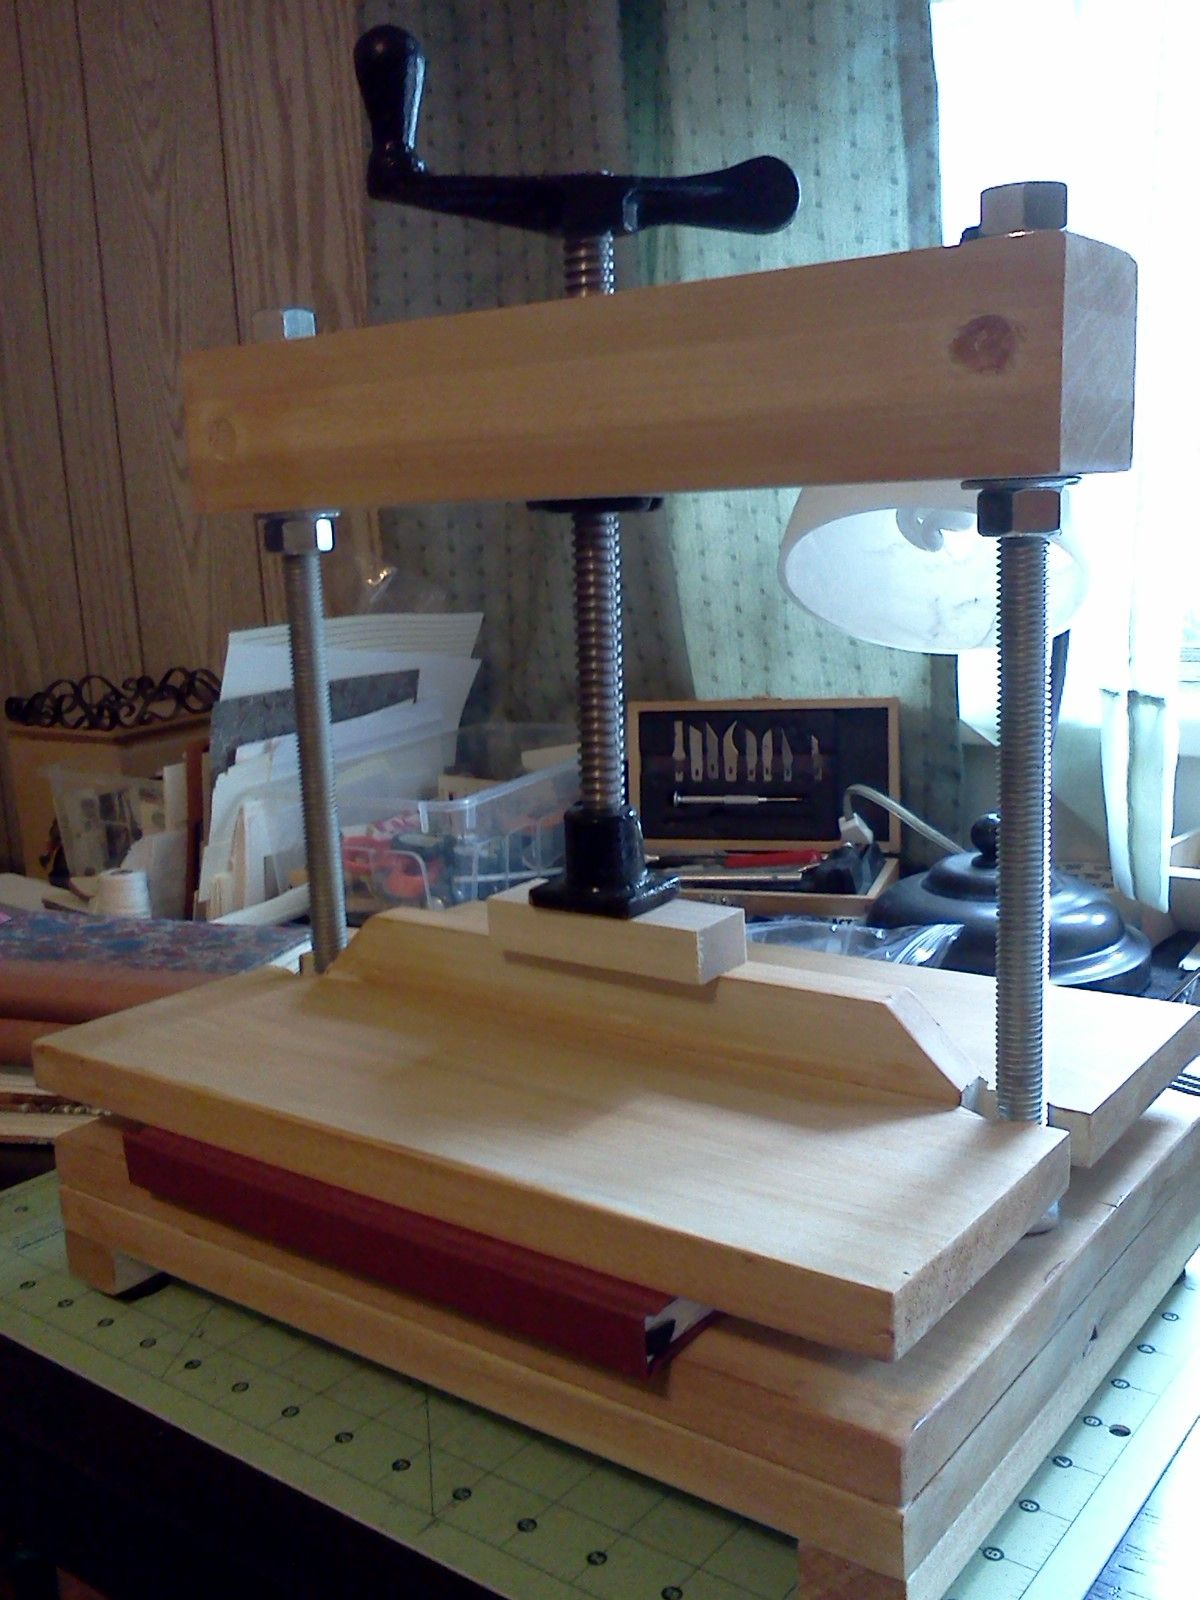 The first edition of my homemade book press.. https//www